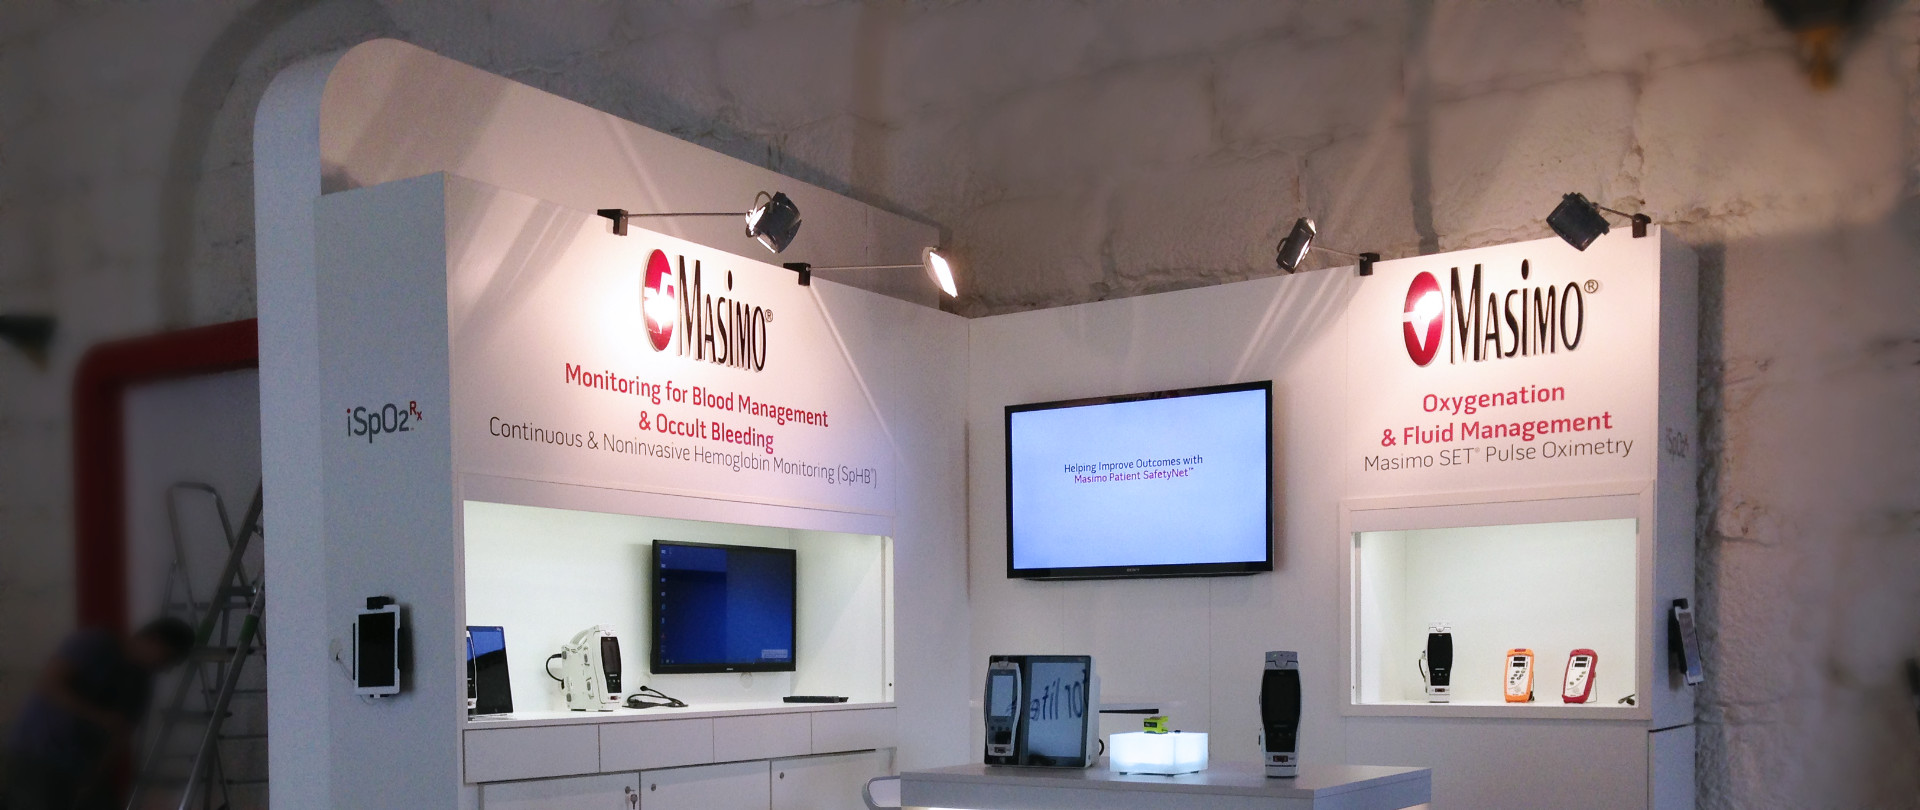 MC-Design - Referenzbild 2 - Arab Health / NATA / ESICM